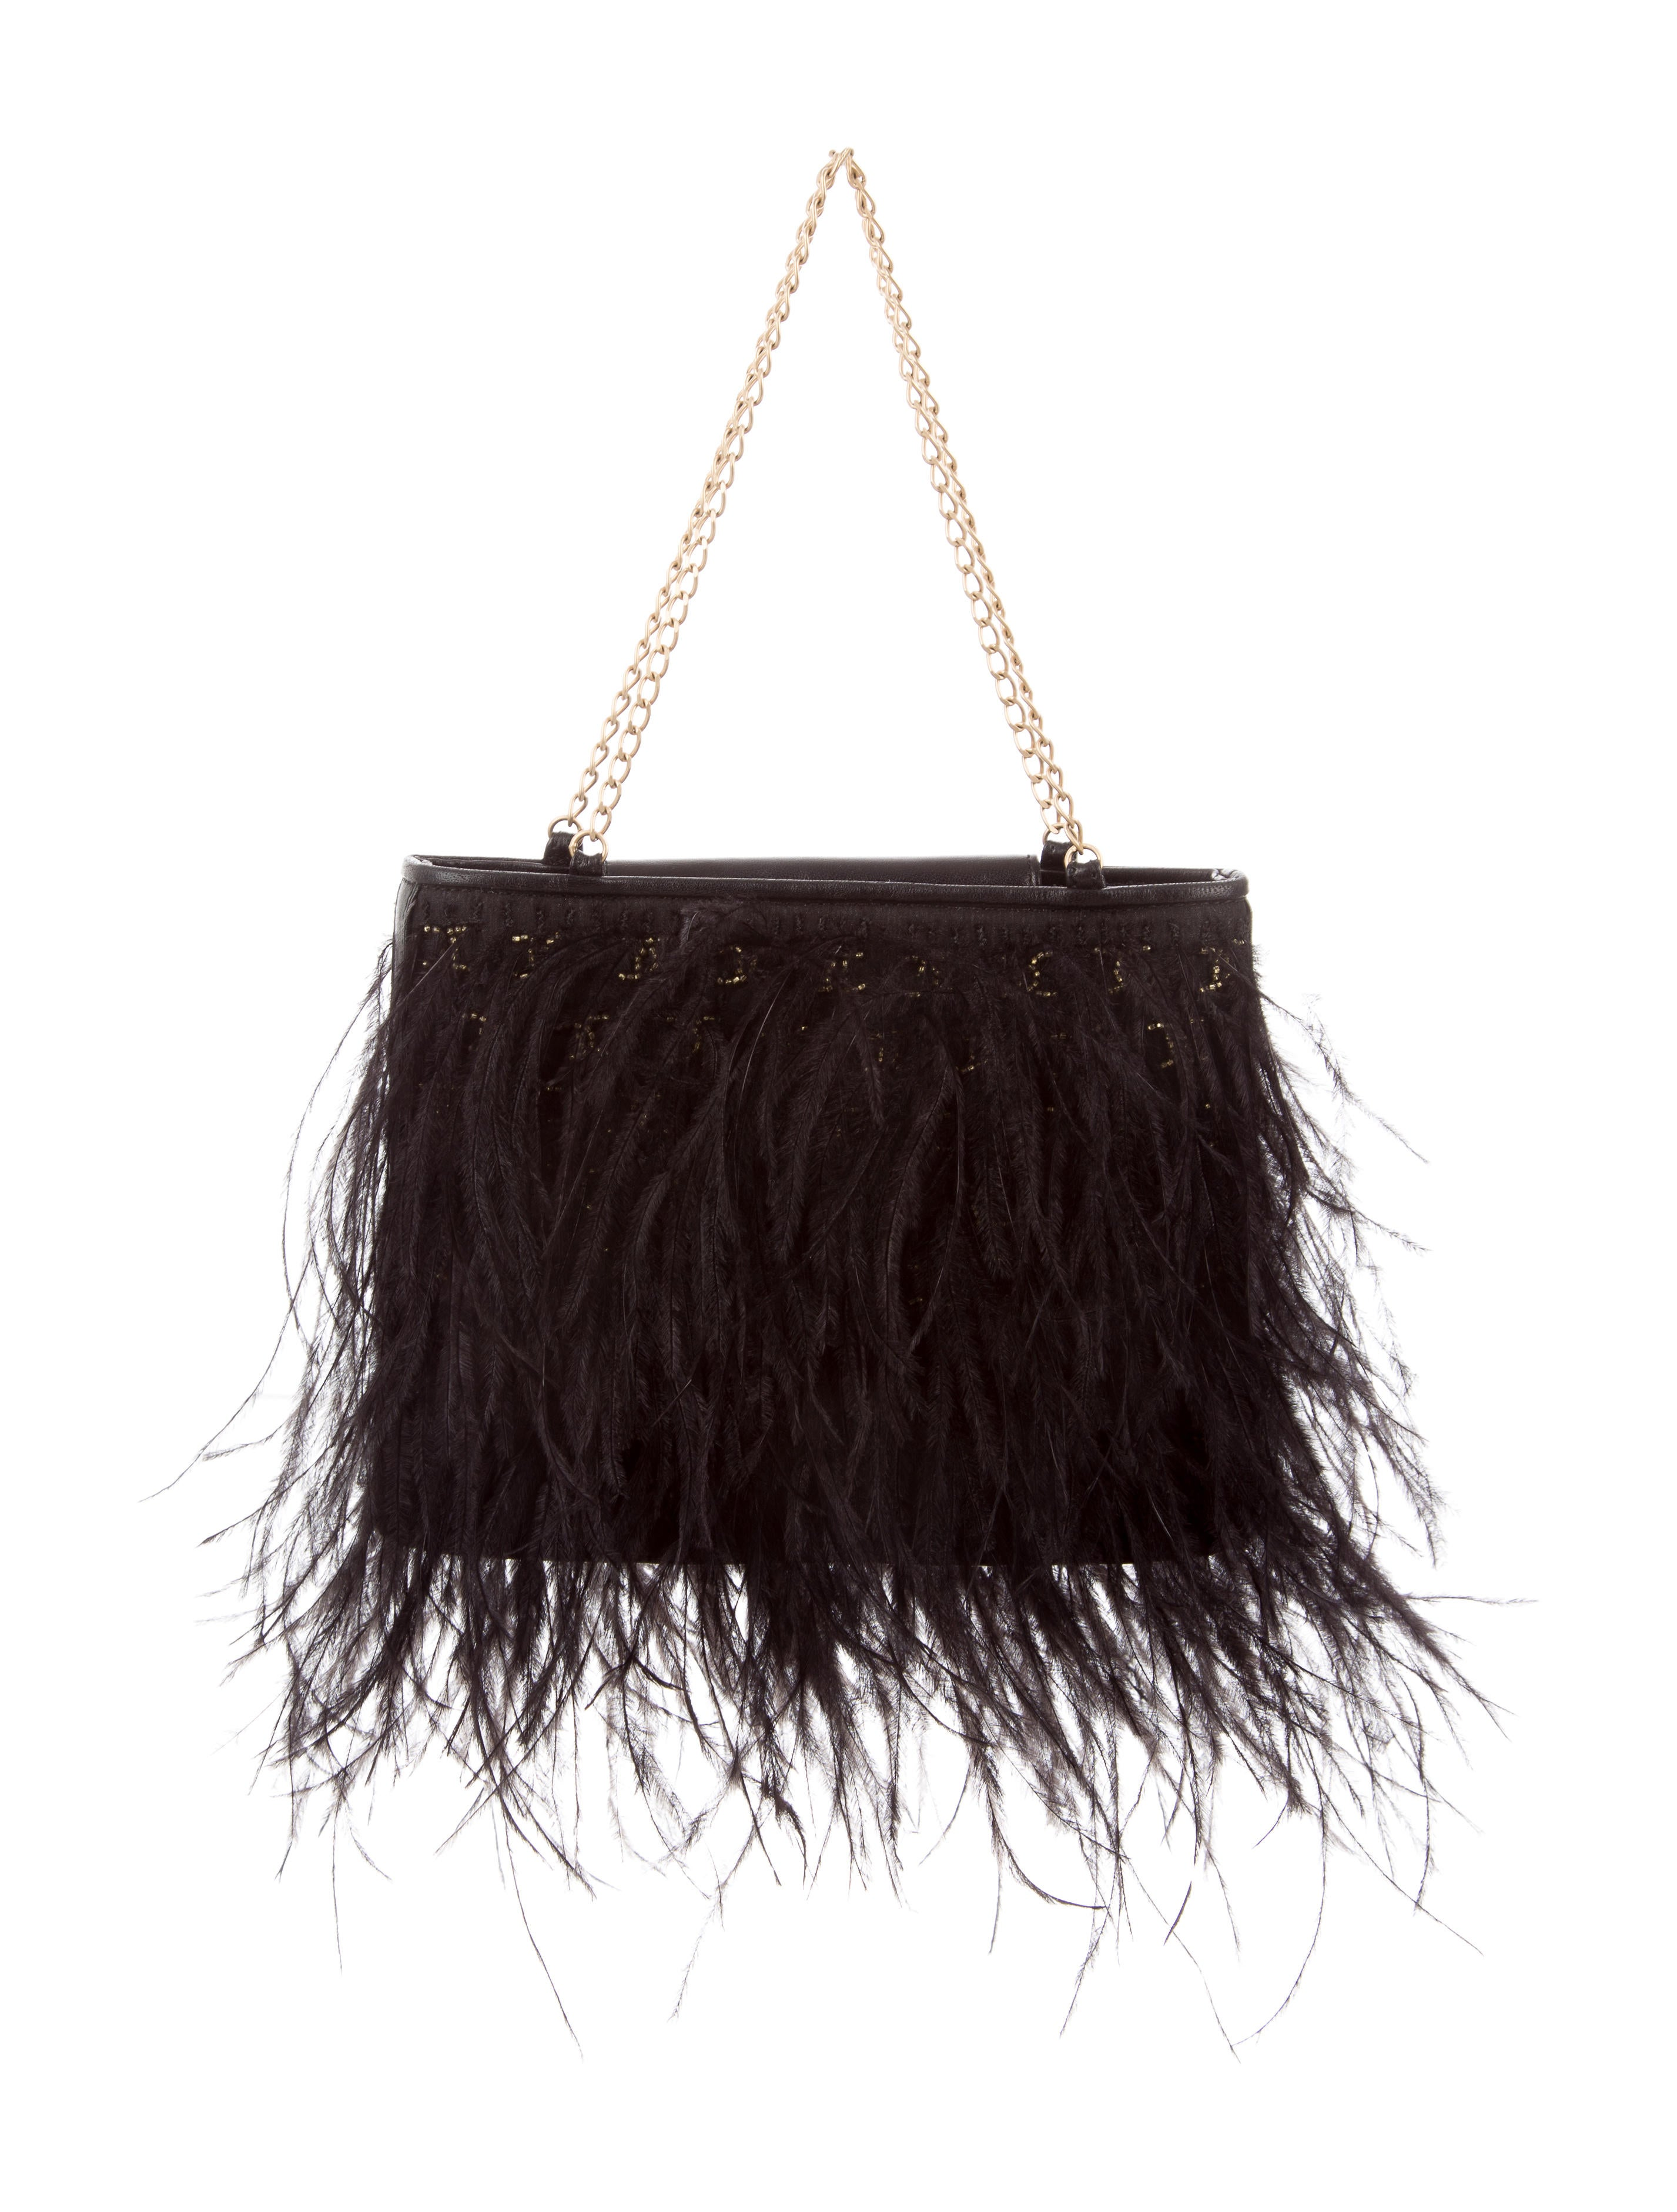 438285855af0e6 Chanel Ostrich Feather Evening Bag - Handbags - CHA218223 | The RealReal